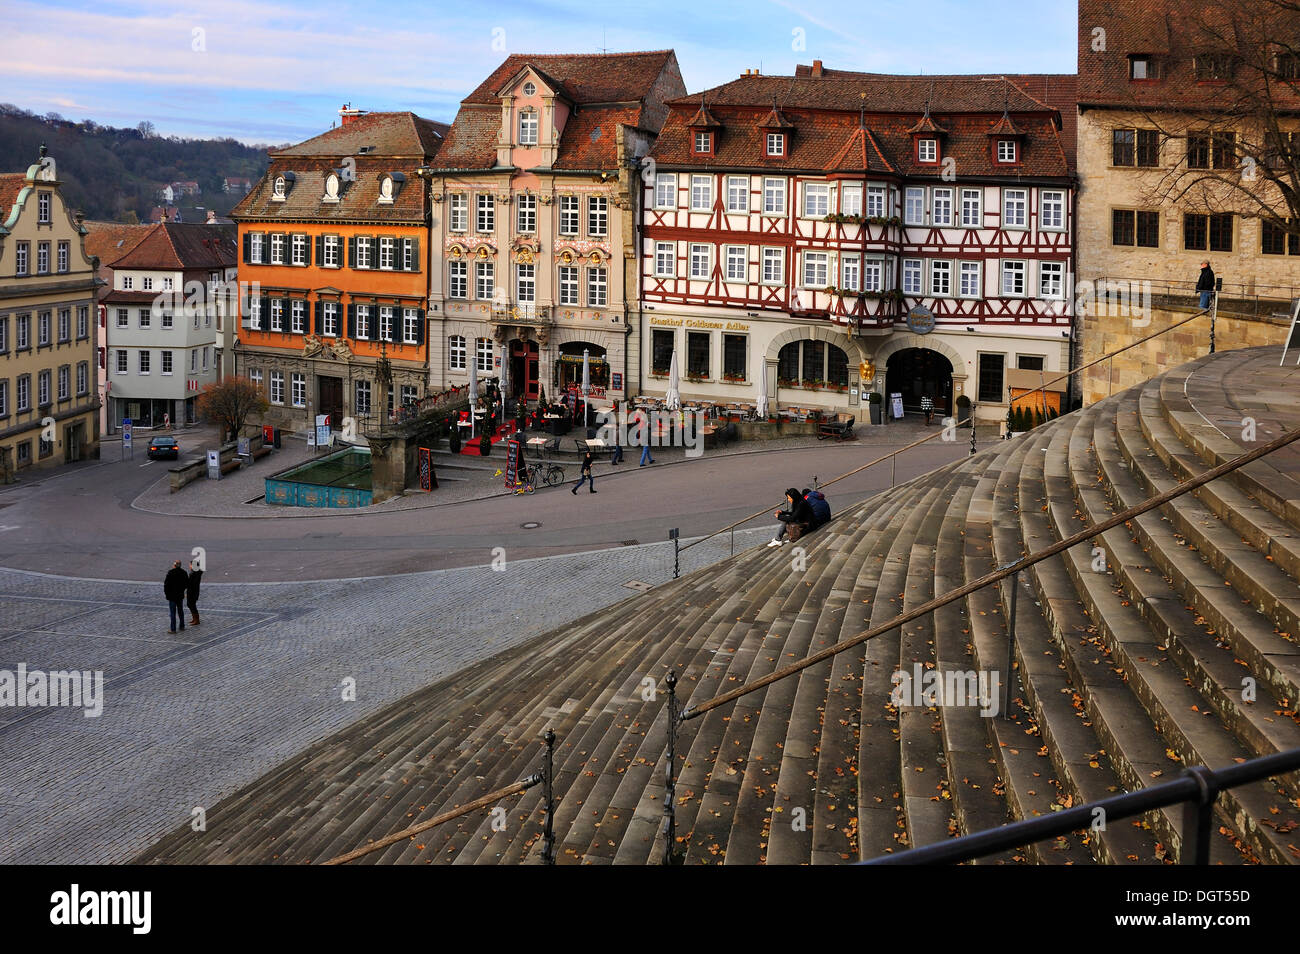 View from the flight of stairs in front of Saint Michael towards the old building facades on Marktplatz square, Schwaebisch Hall - Stock Image